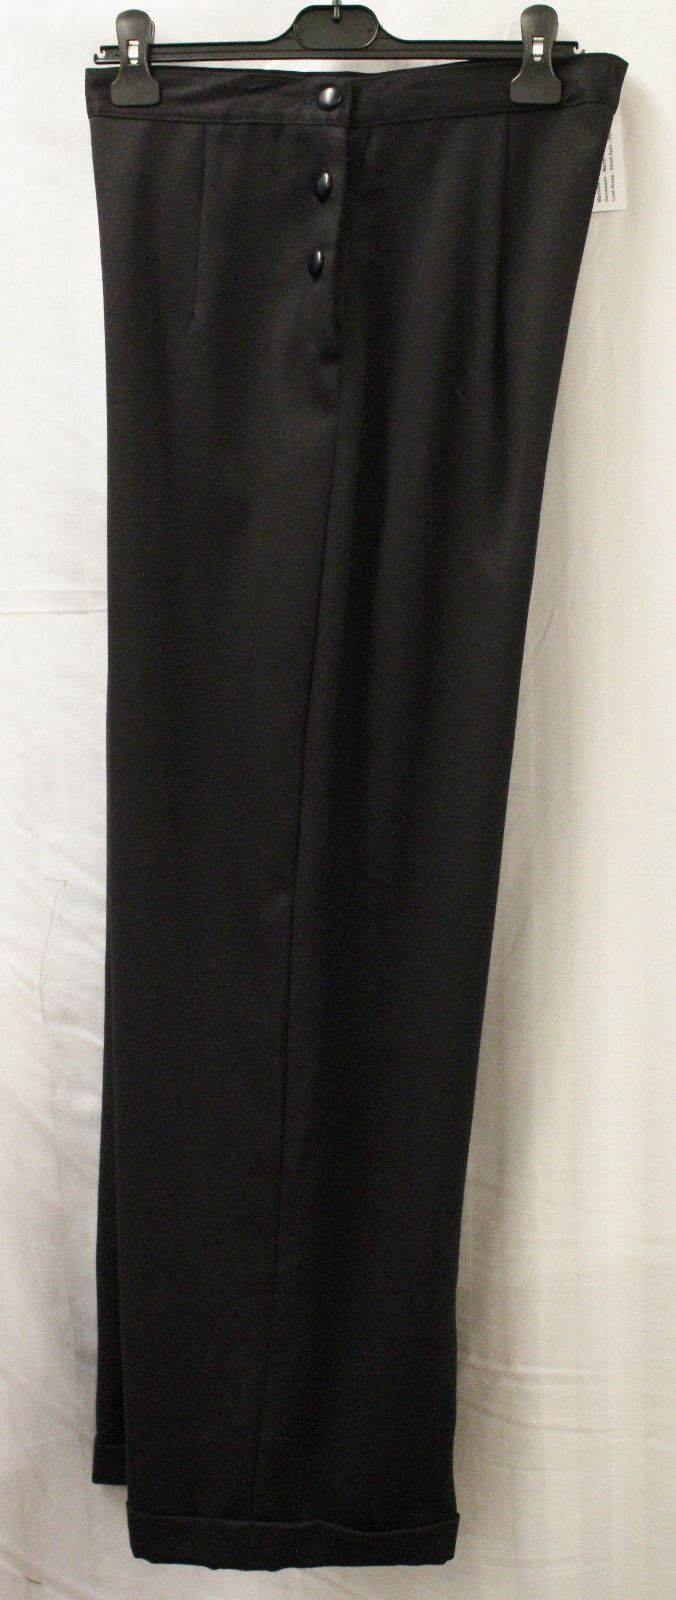 Womens 1940s high waist/wide leg #black #trousers wwii ww2  #reenactment lindy ho,  View more on the LINK: http://www.zeppy.io/product/gb/2/322292642014/